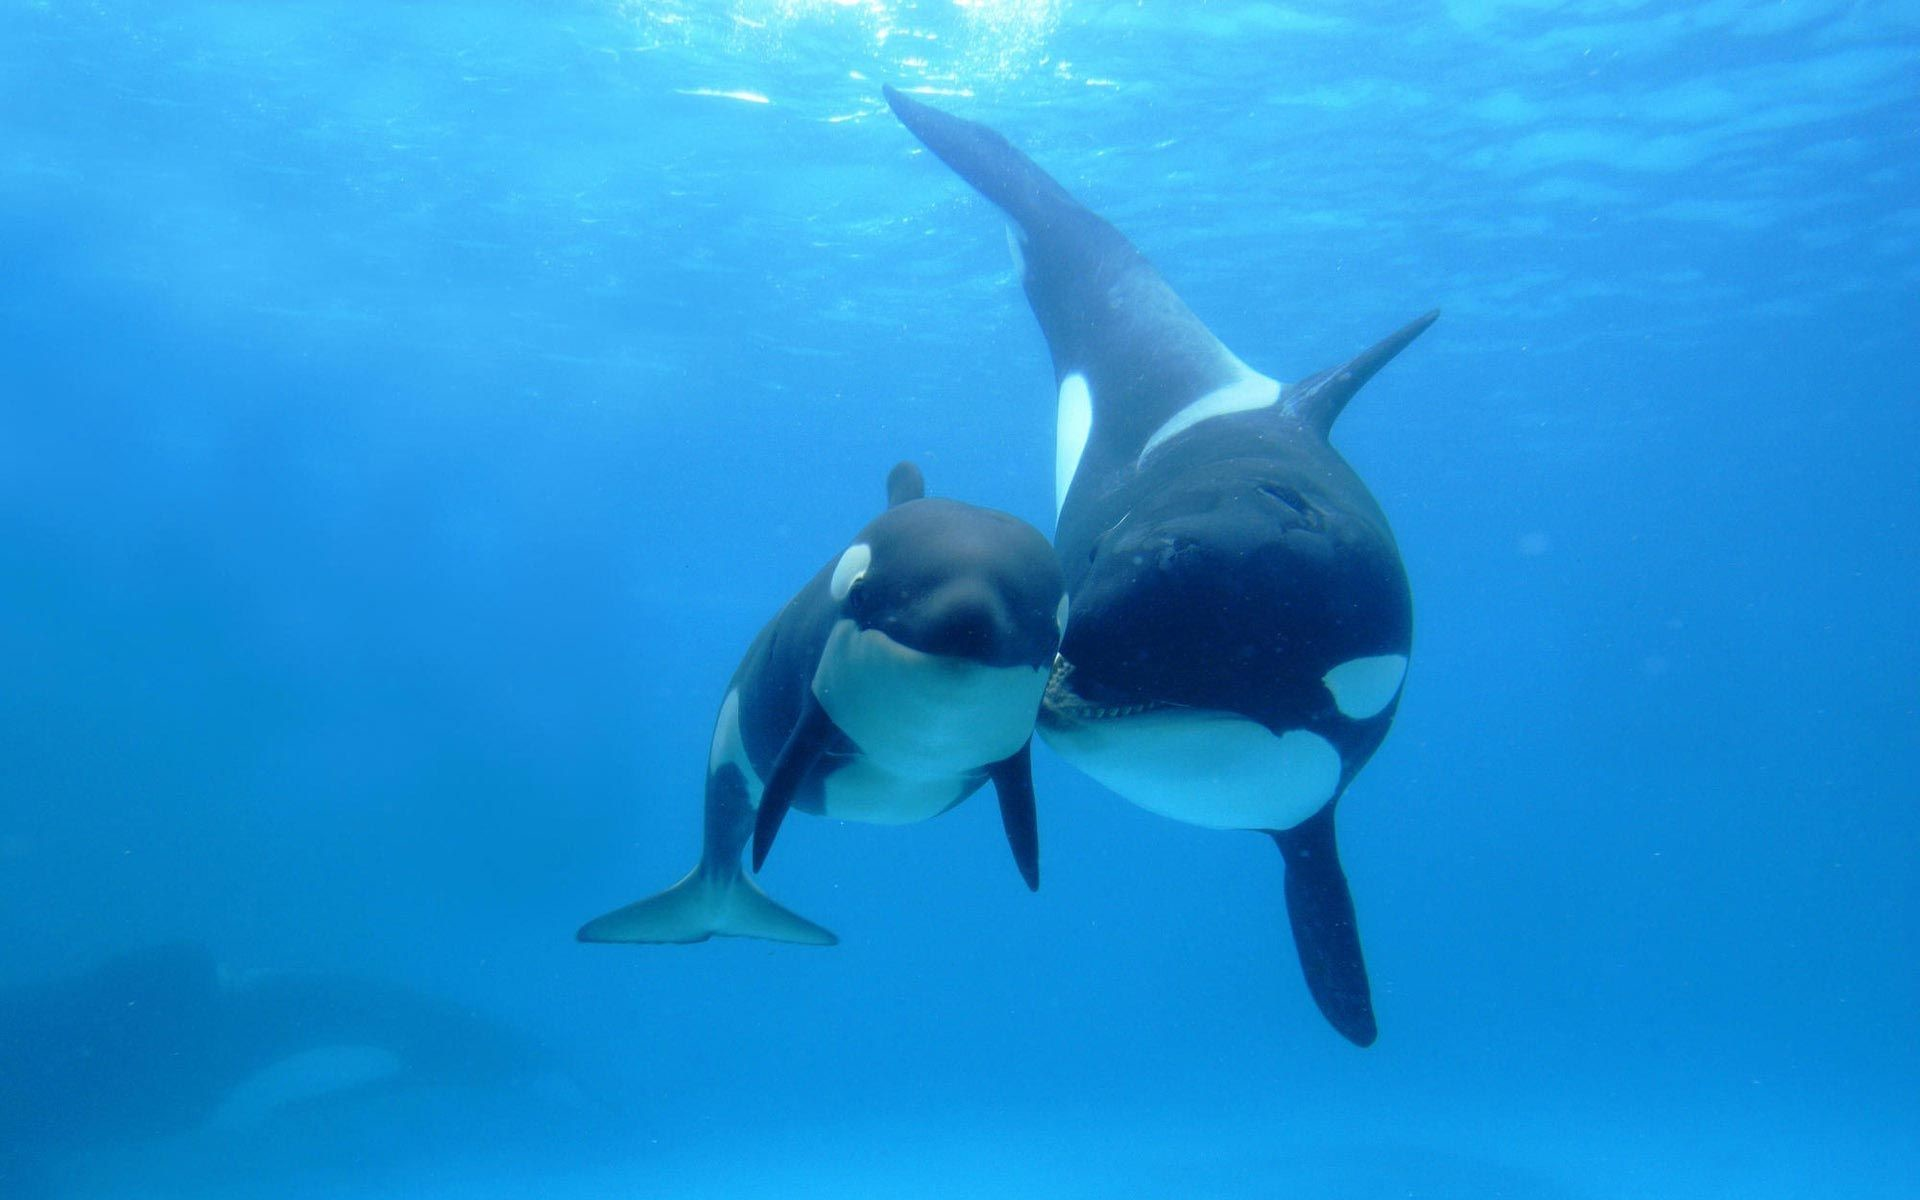 Orca Wallpapers HD Screenshot 3 Source Killer Whale 51 Background Pictures